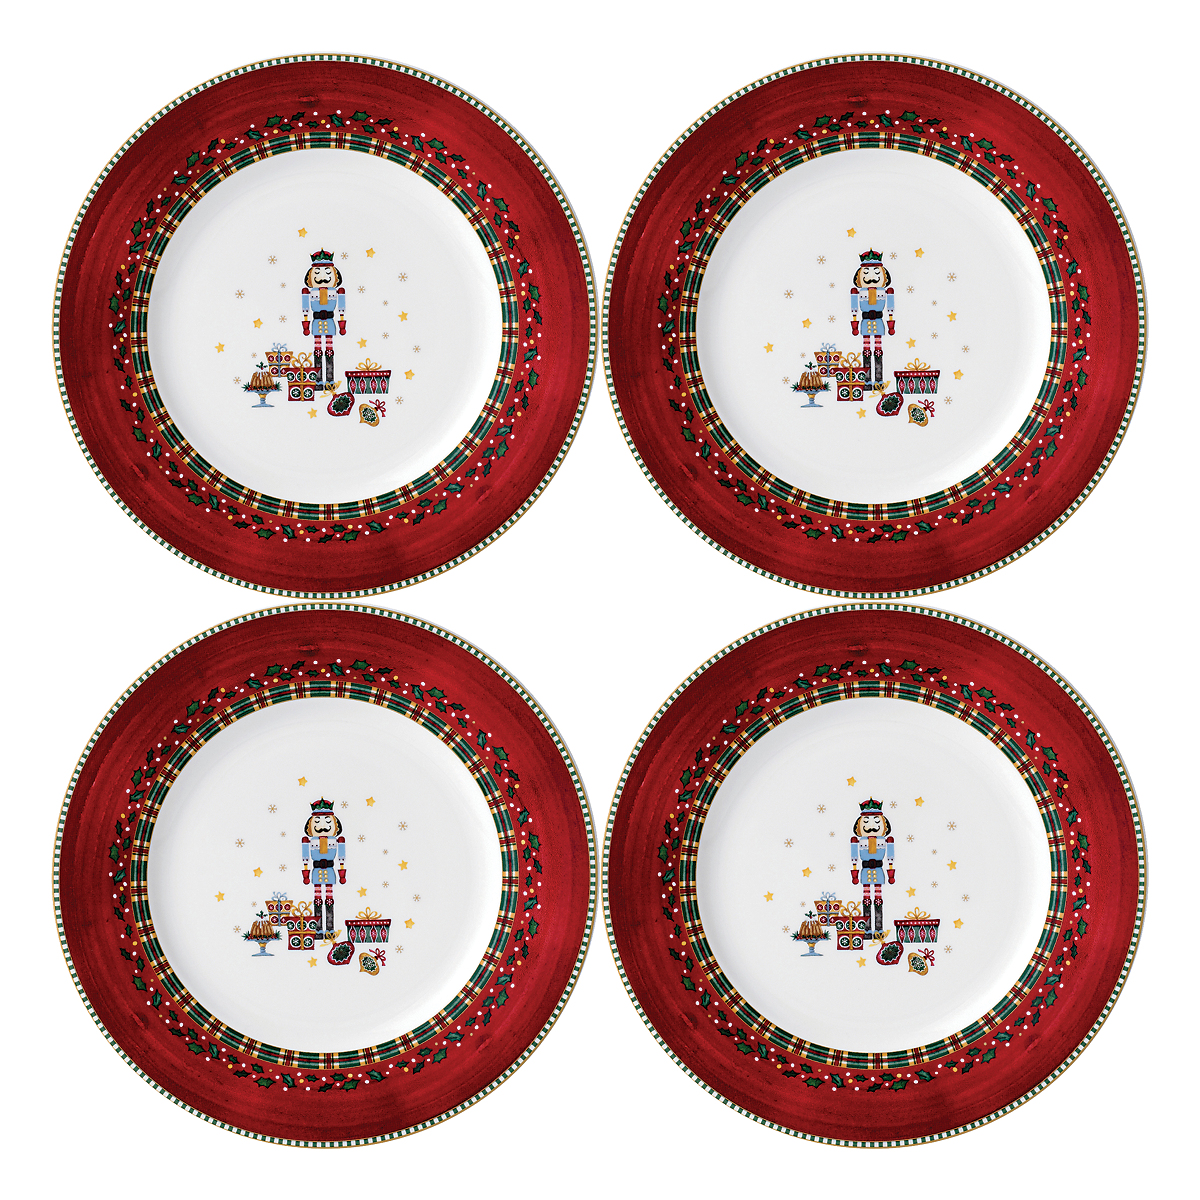 Prouna nutcracker canap plates set of 4 gump 39 s for What are canape plates